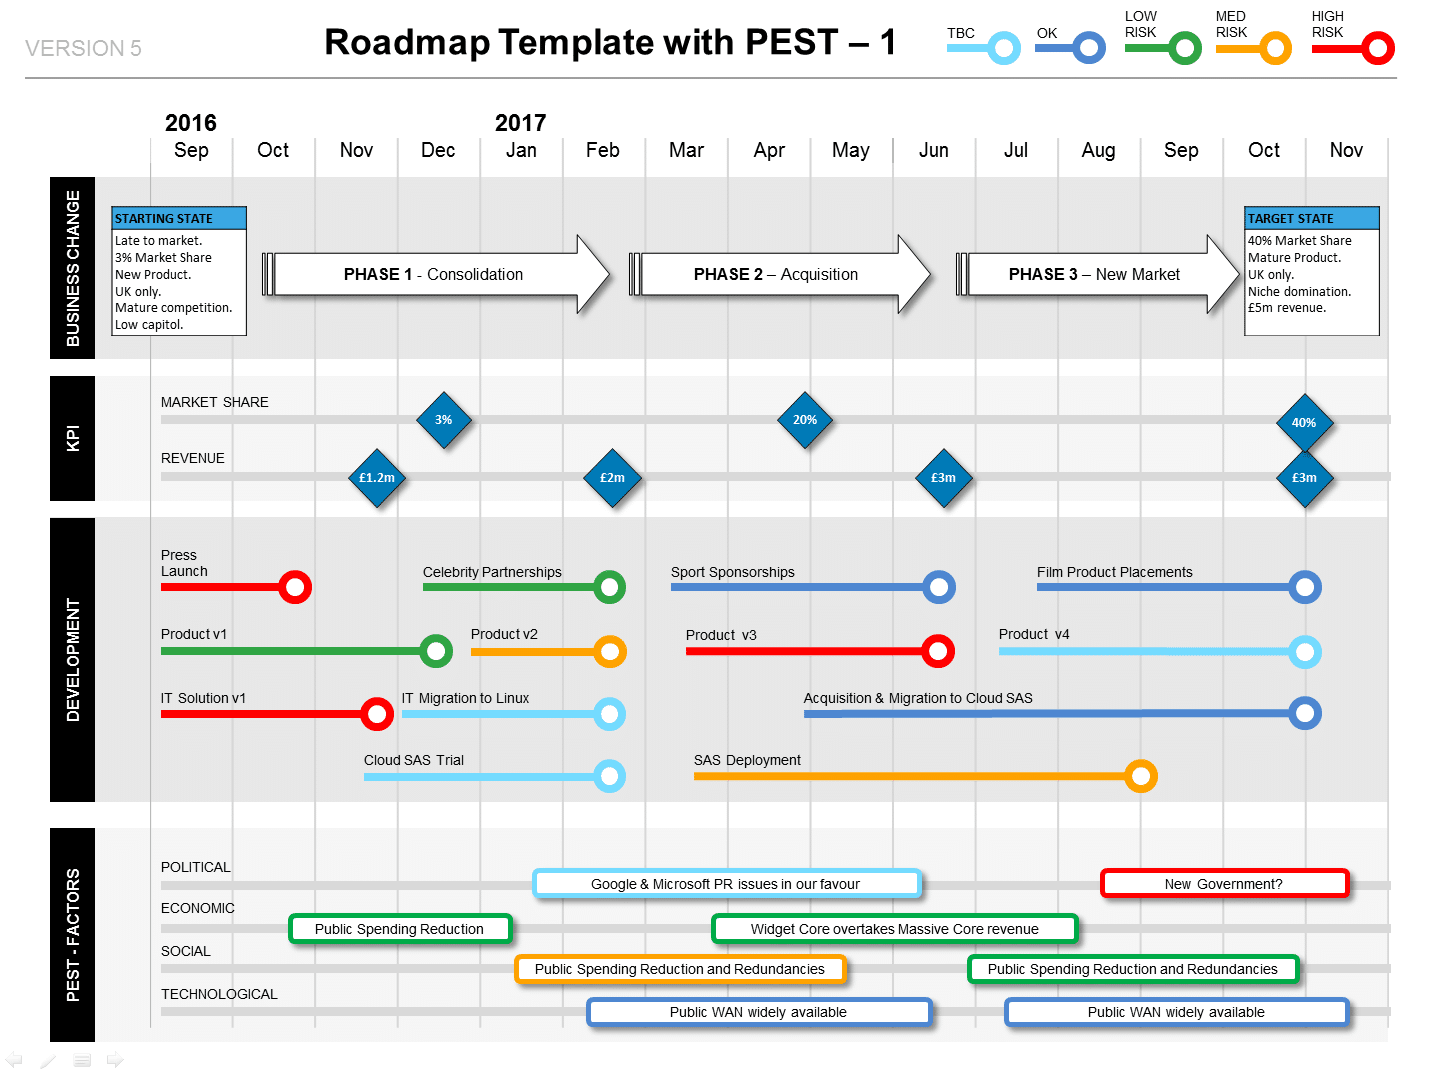 Roadmap With PEST Factors, Phases, KPIs & Milestones